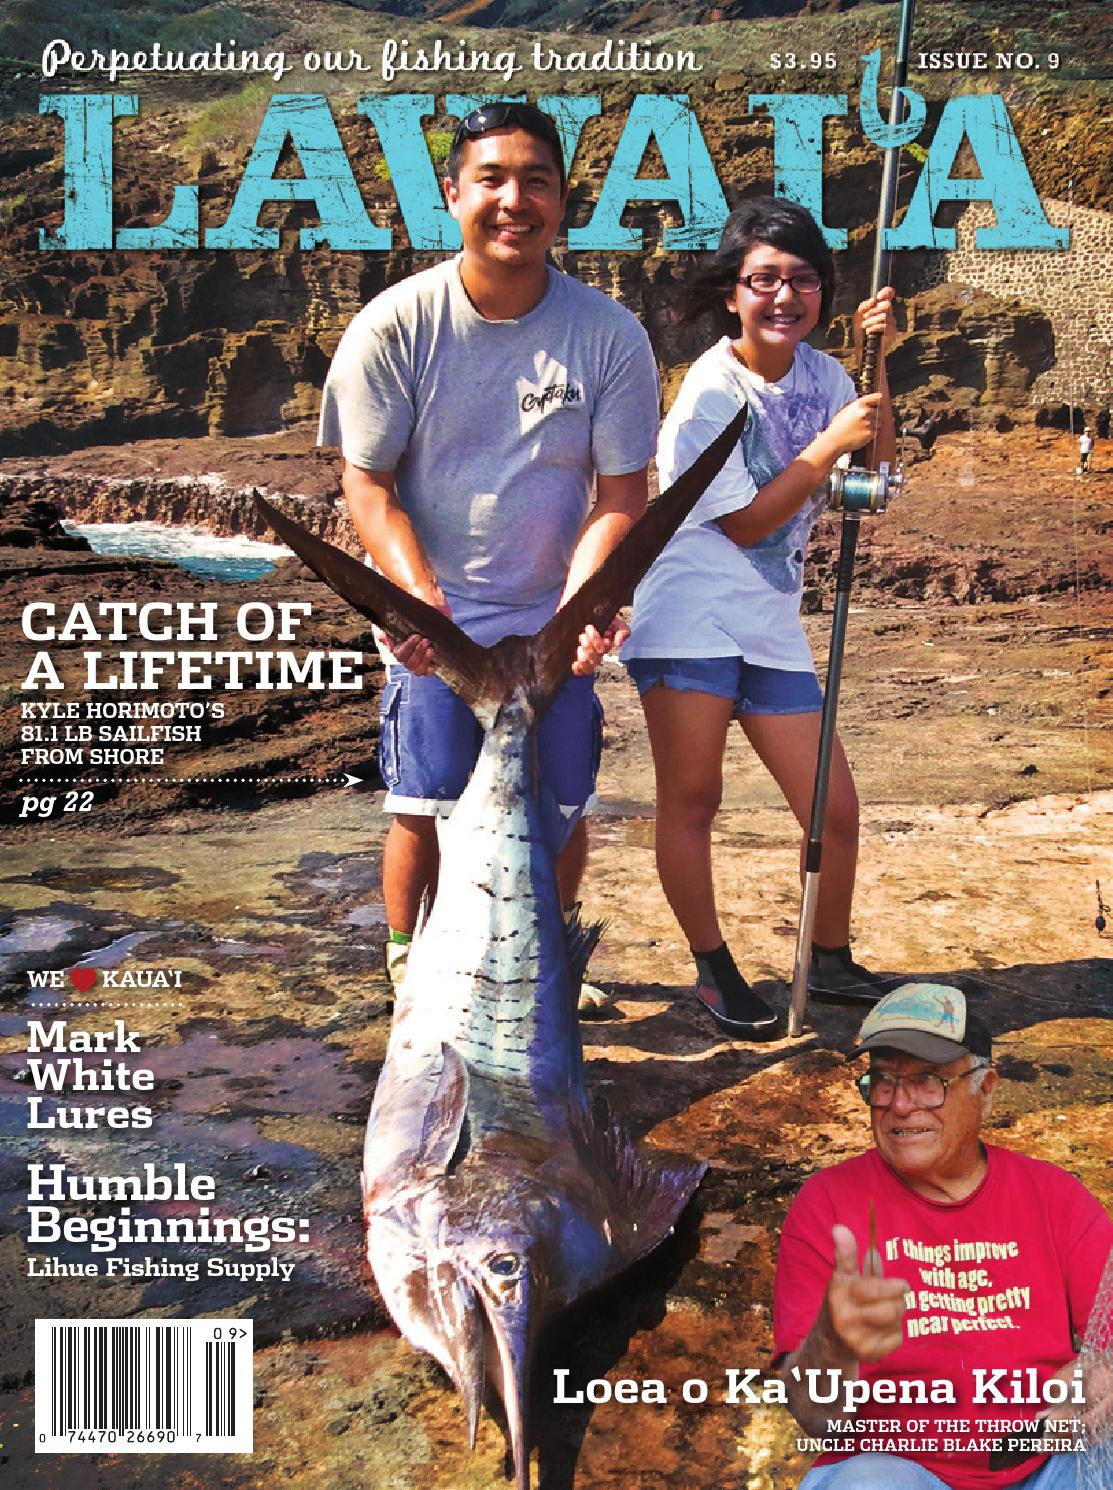 Lawai 39 a issue 9 by lawai 39 a magazine issuu for Fishing stores oahu